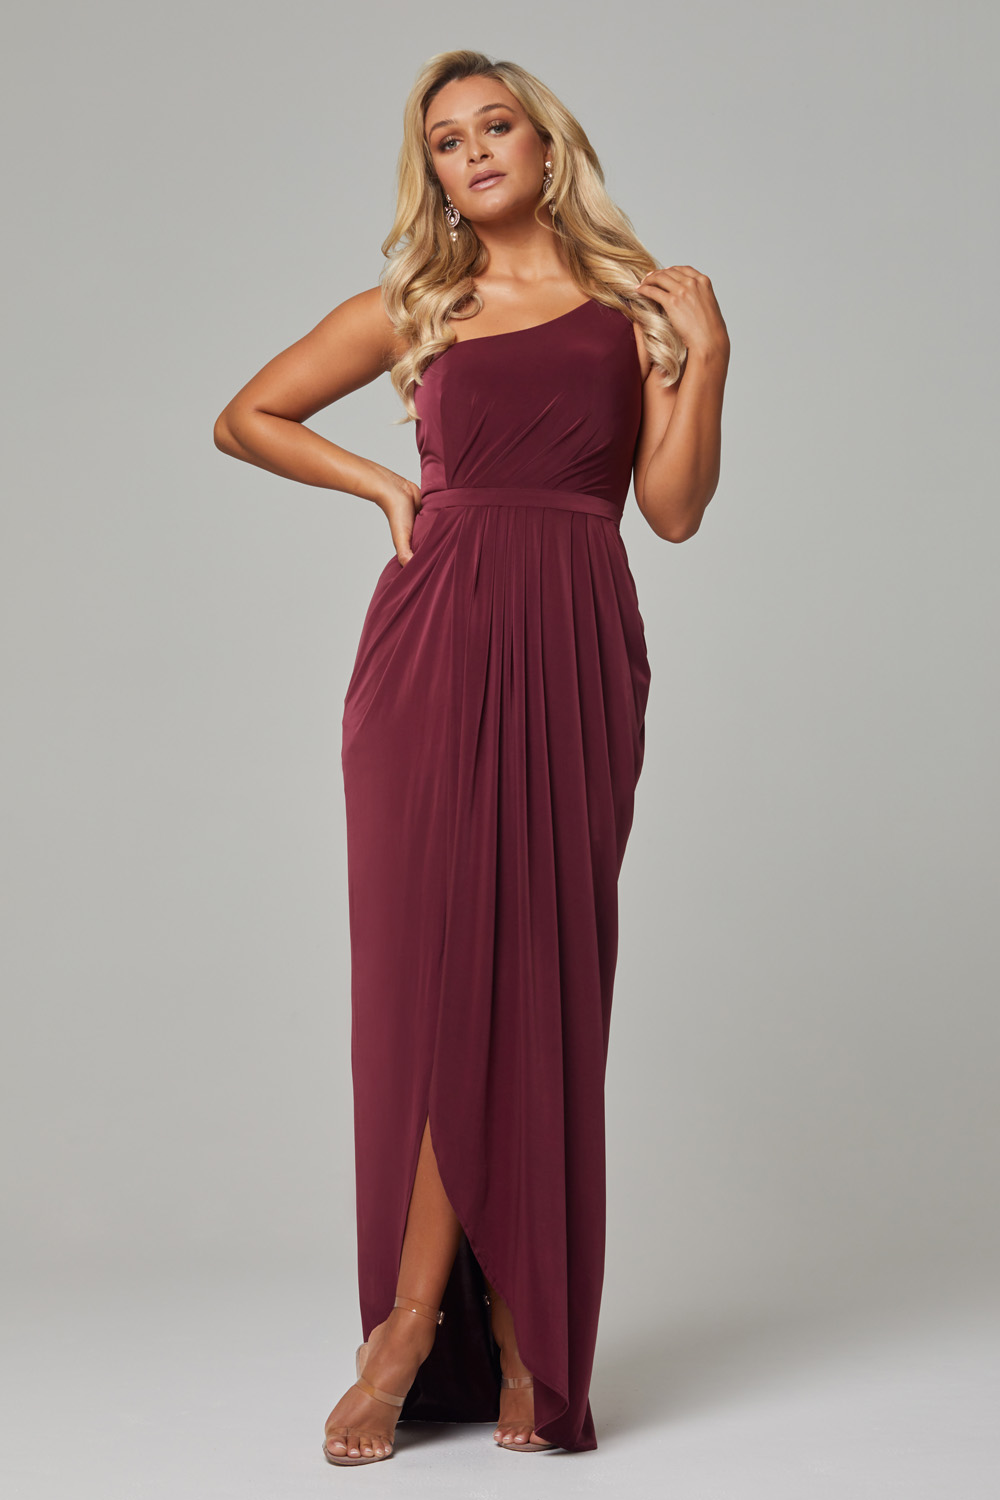 Eloise Bridesmaids Dress-wine